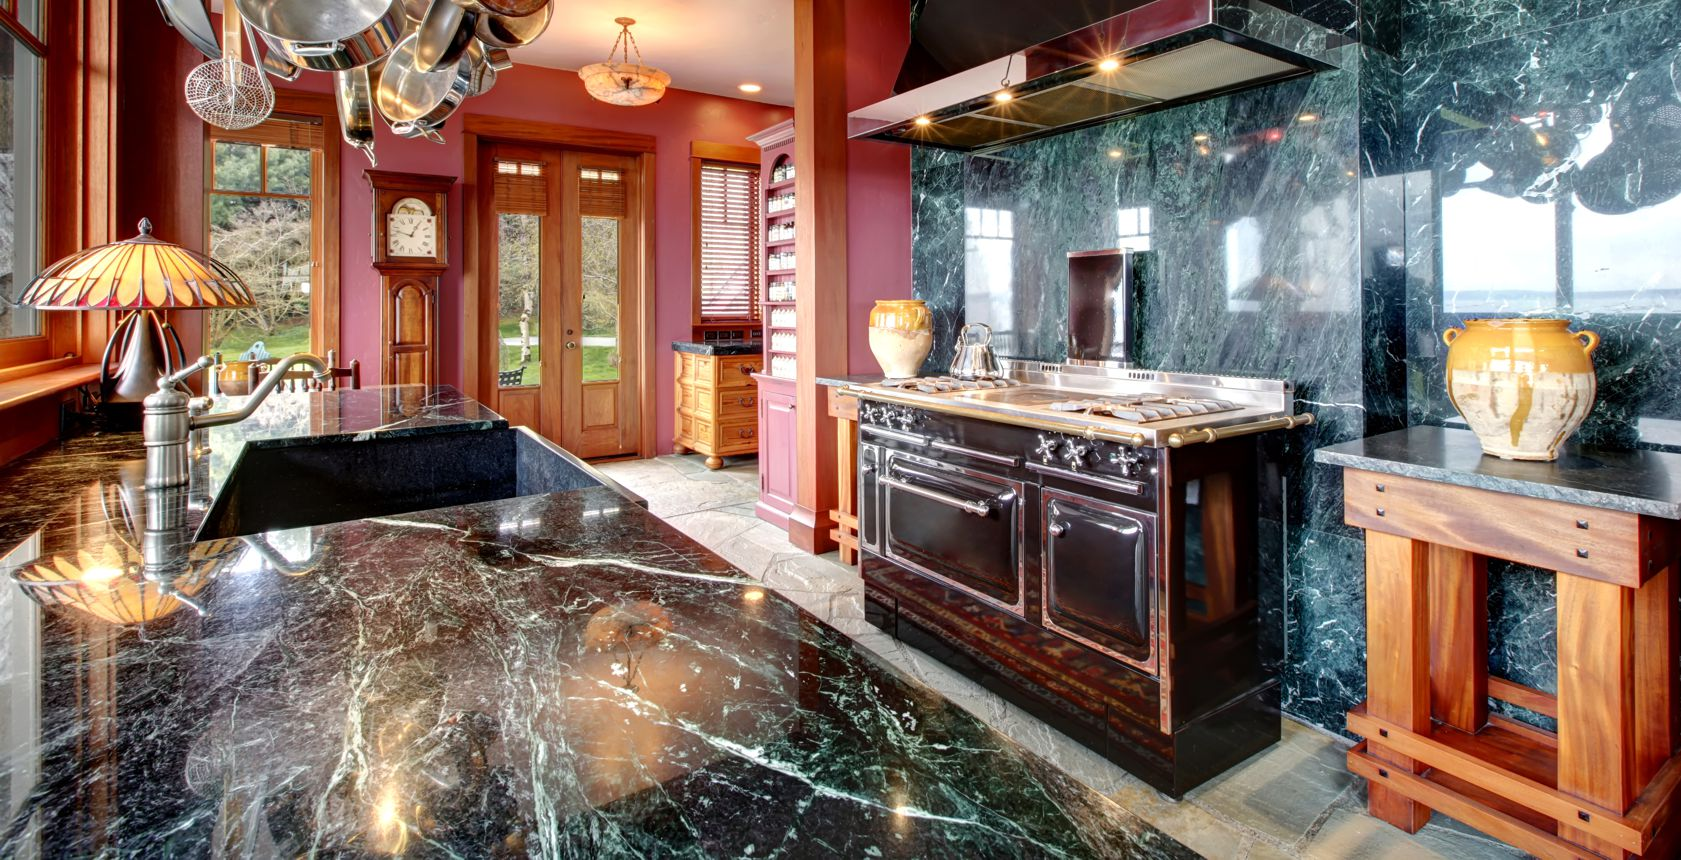 green marble kitchen worktop and walls